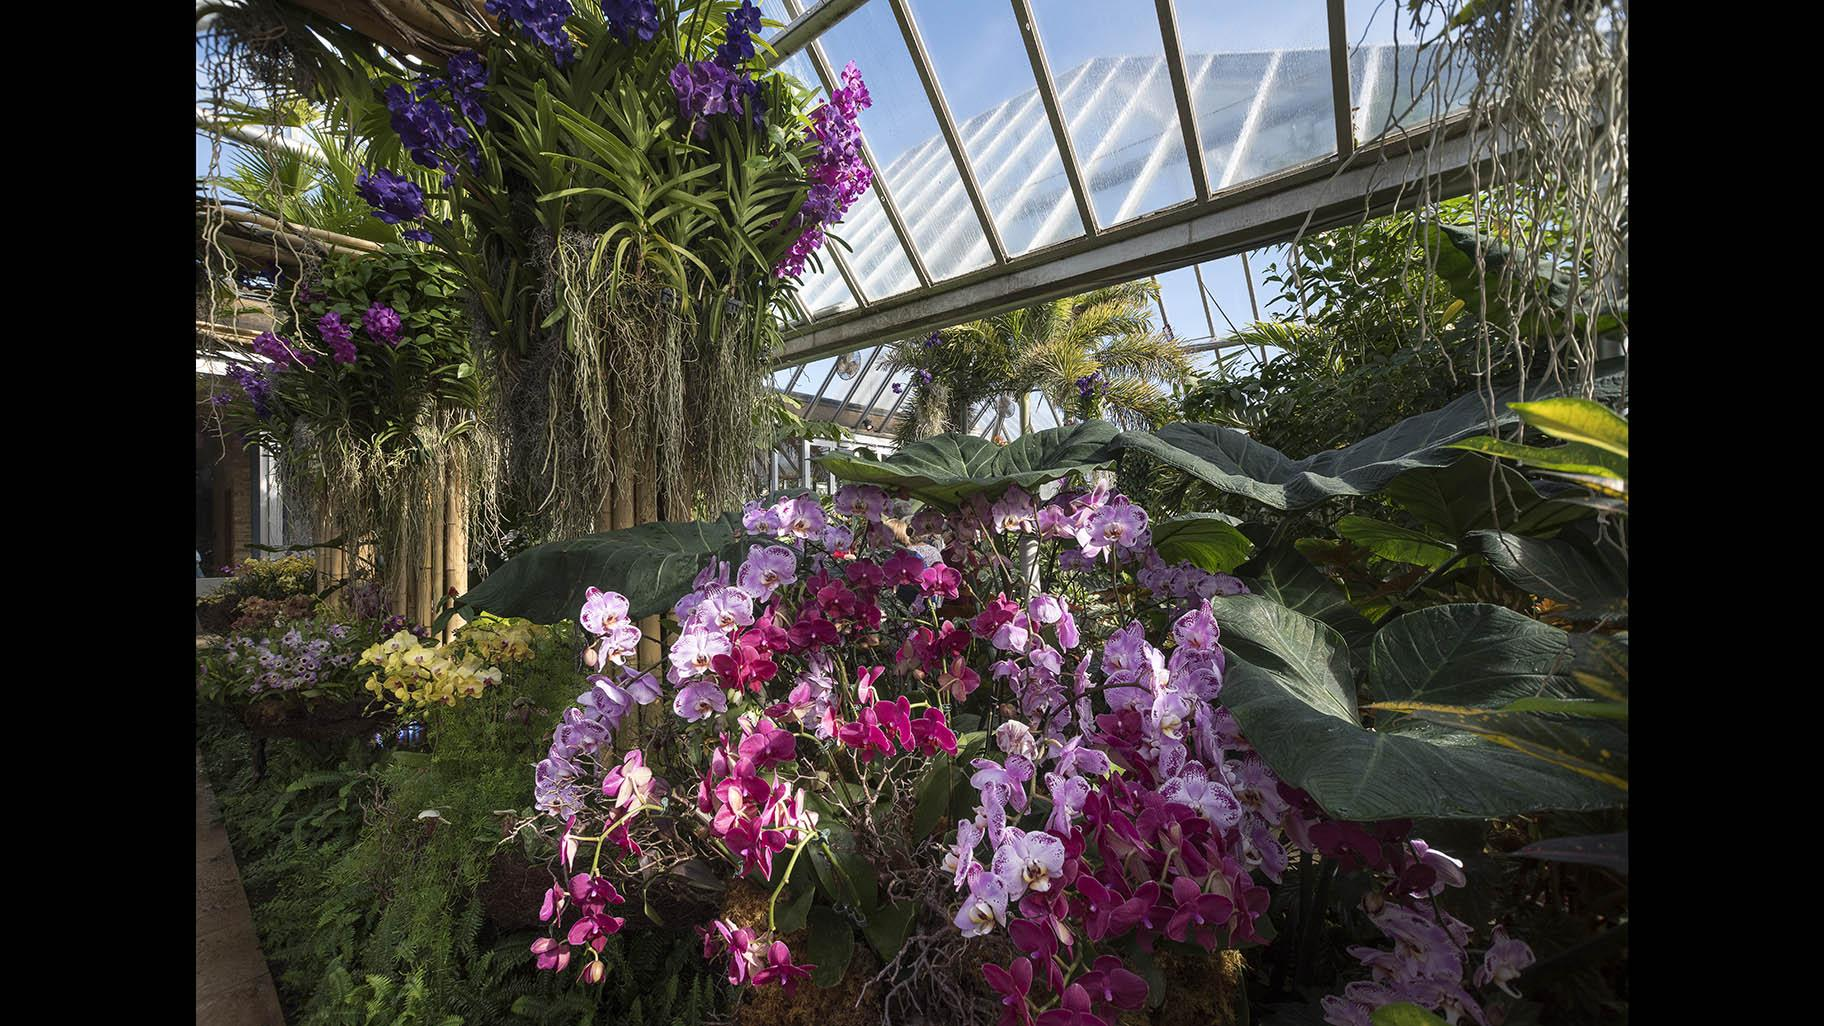 The Orchid Show returns to the Chicago Botanic Garden on Feb. 8, 2020. (Courtesy of the Chicago Botanic Garden)